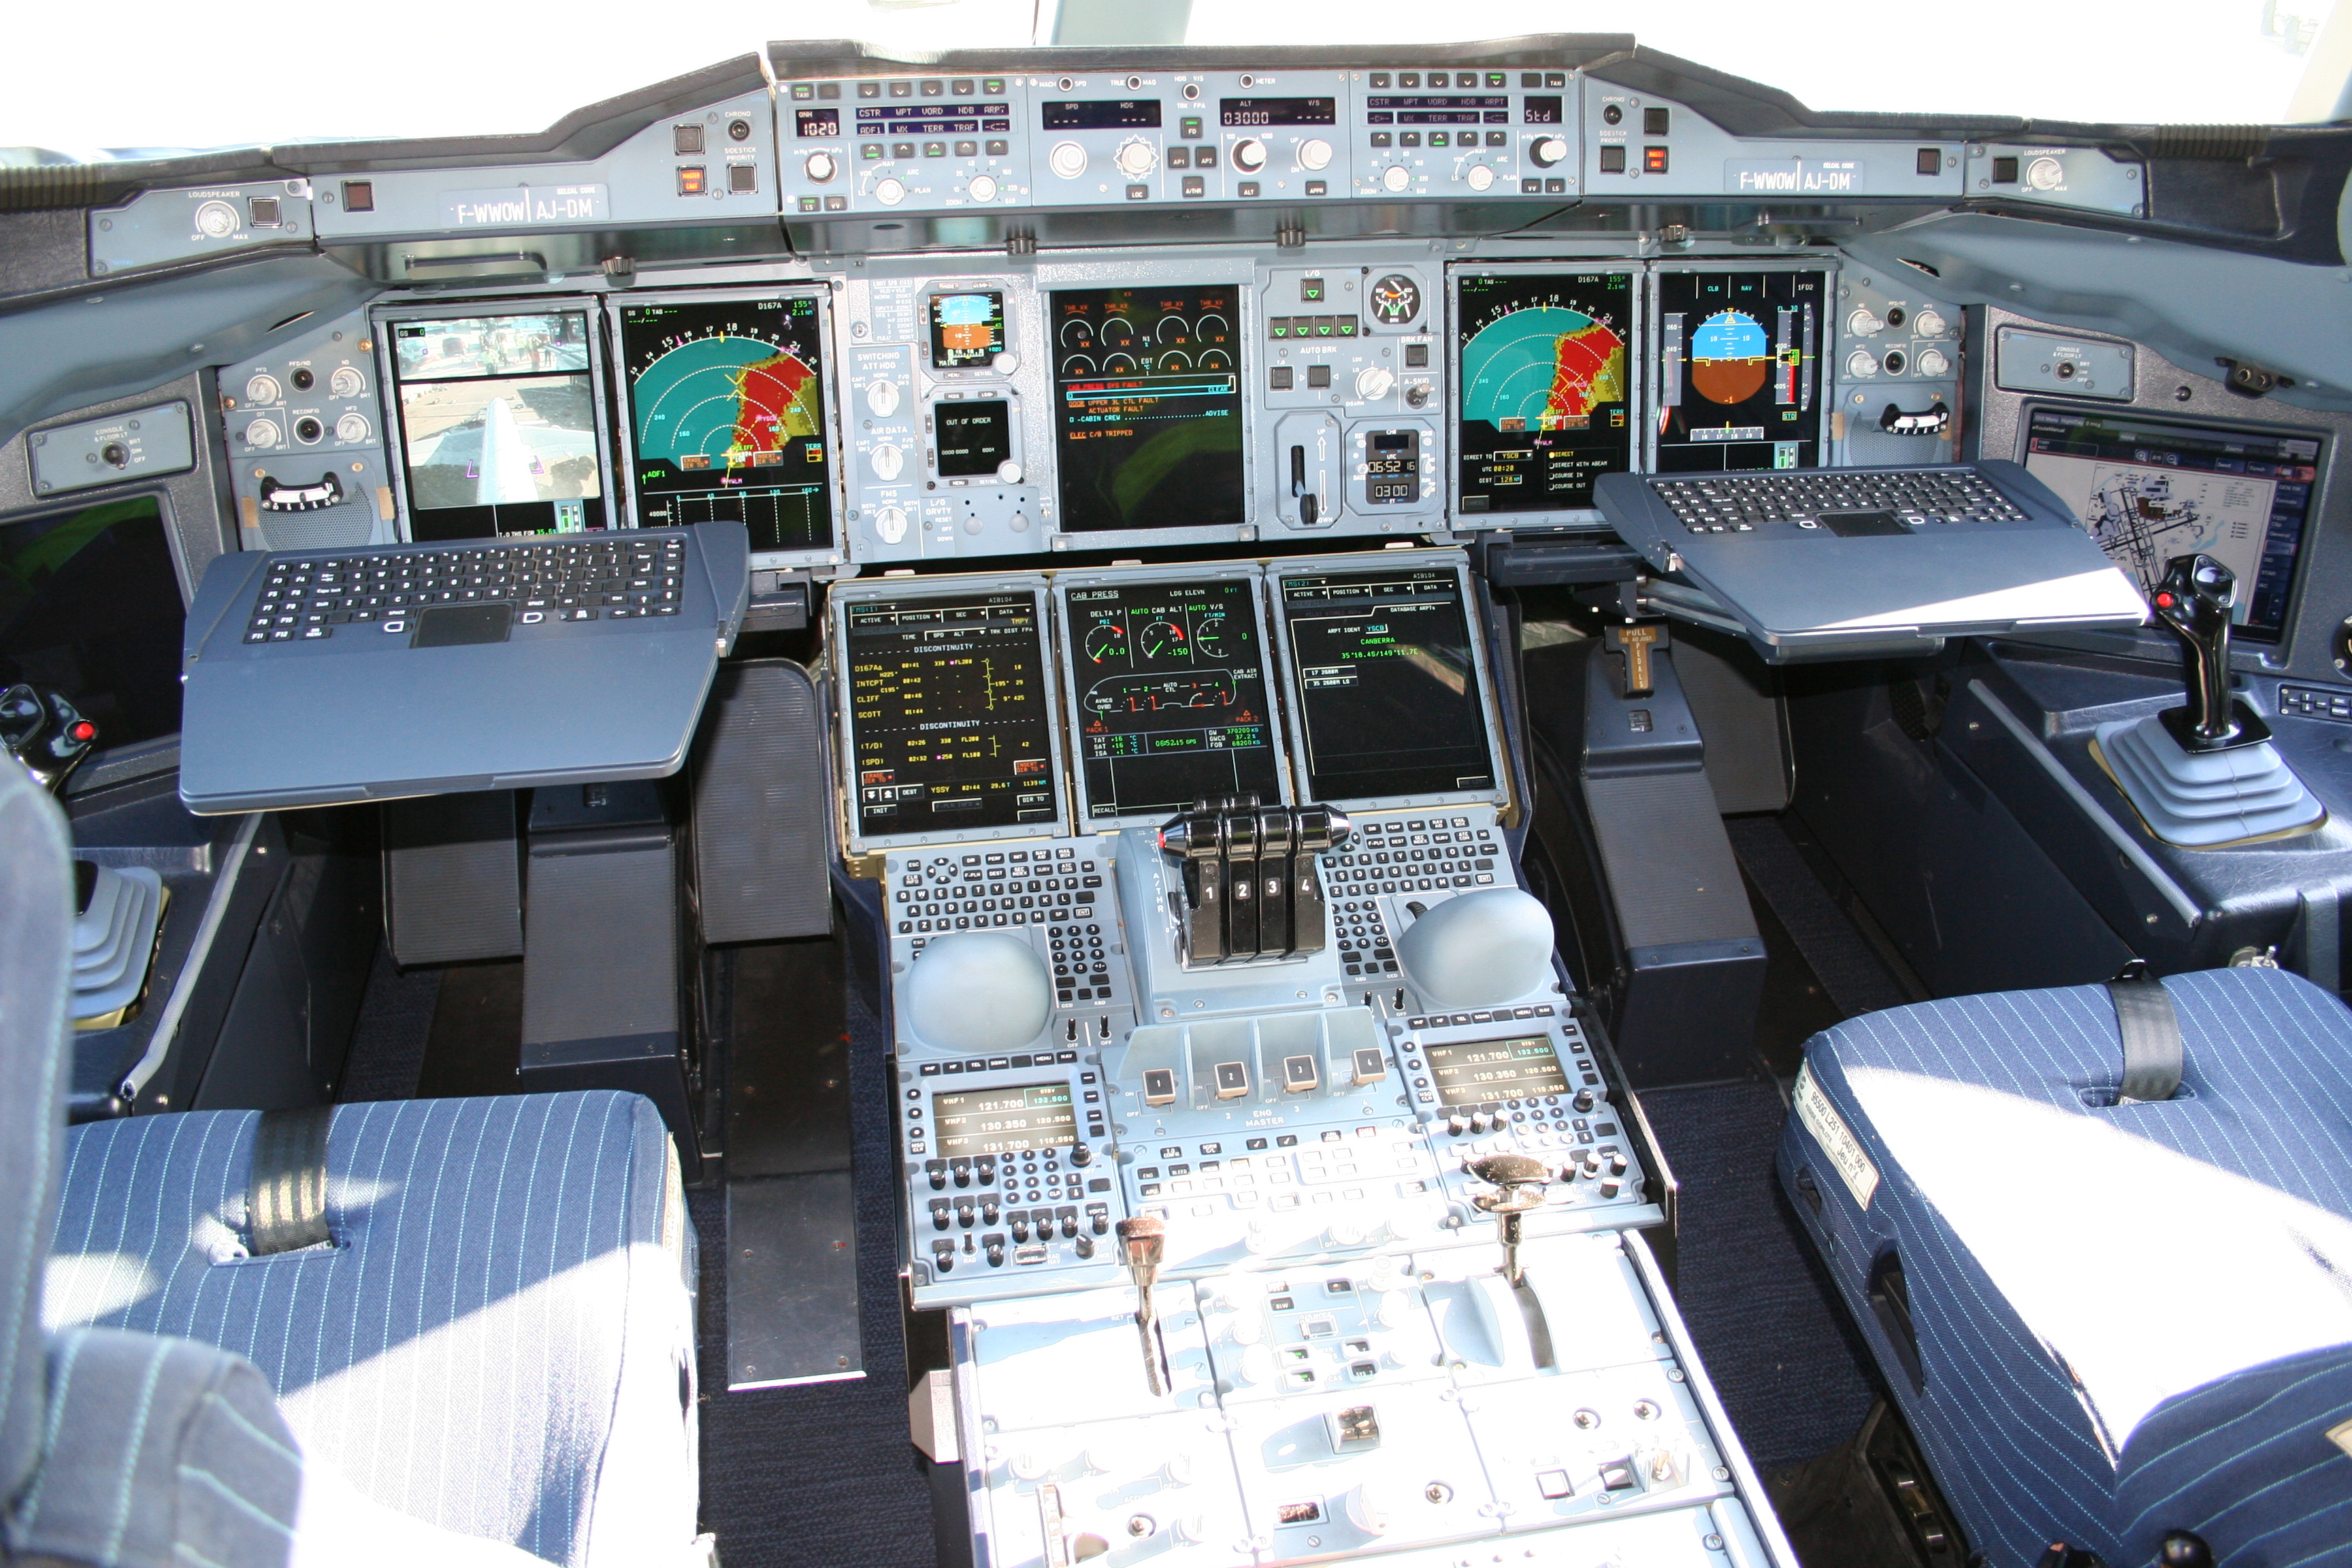 Cockpit with control stick